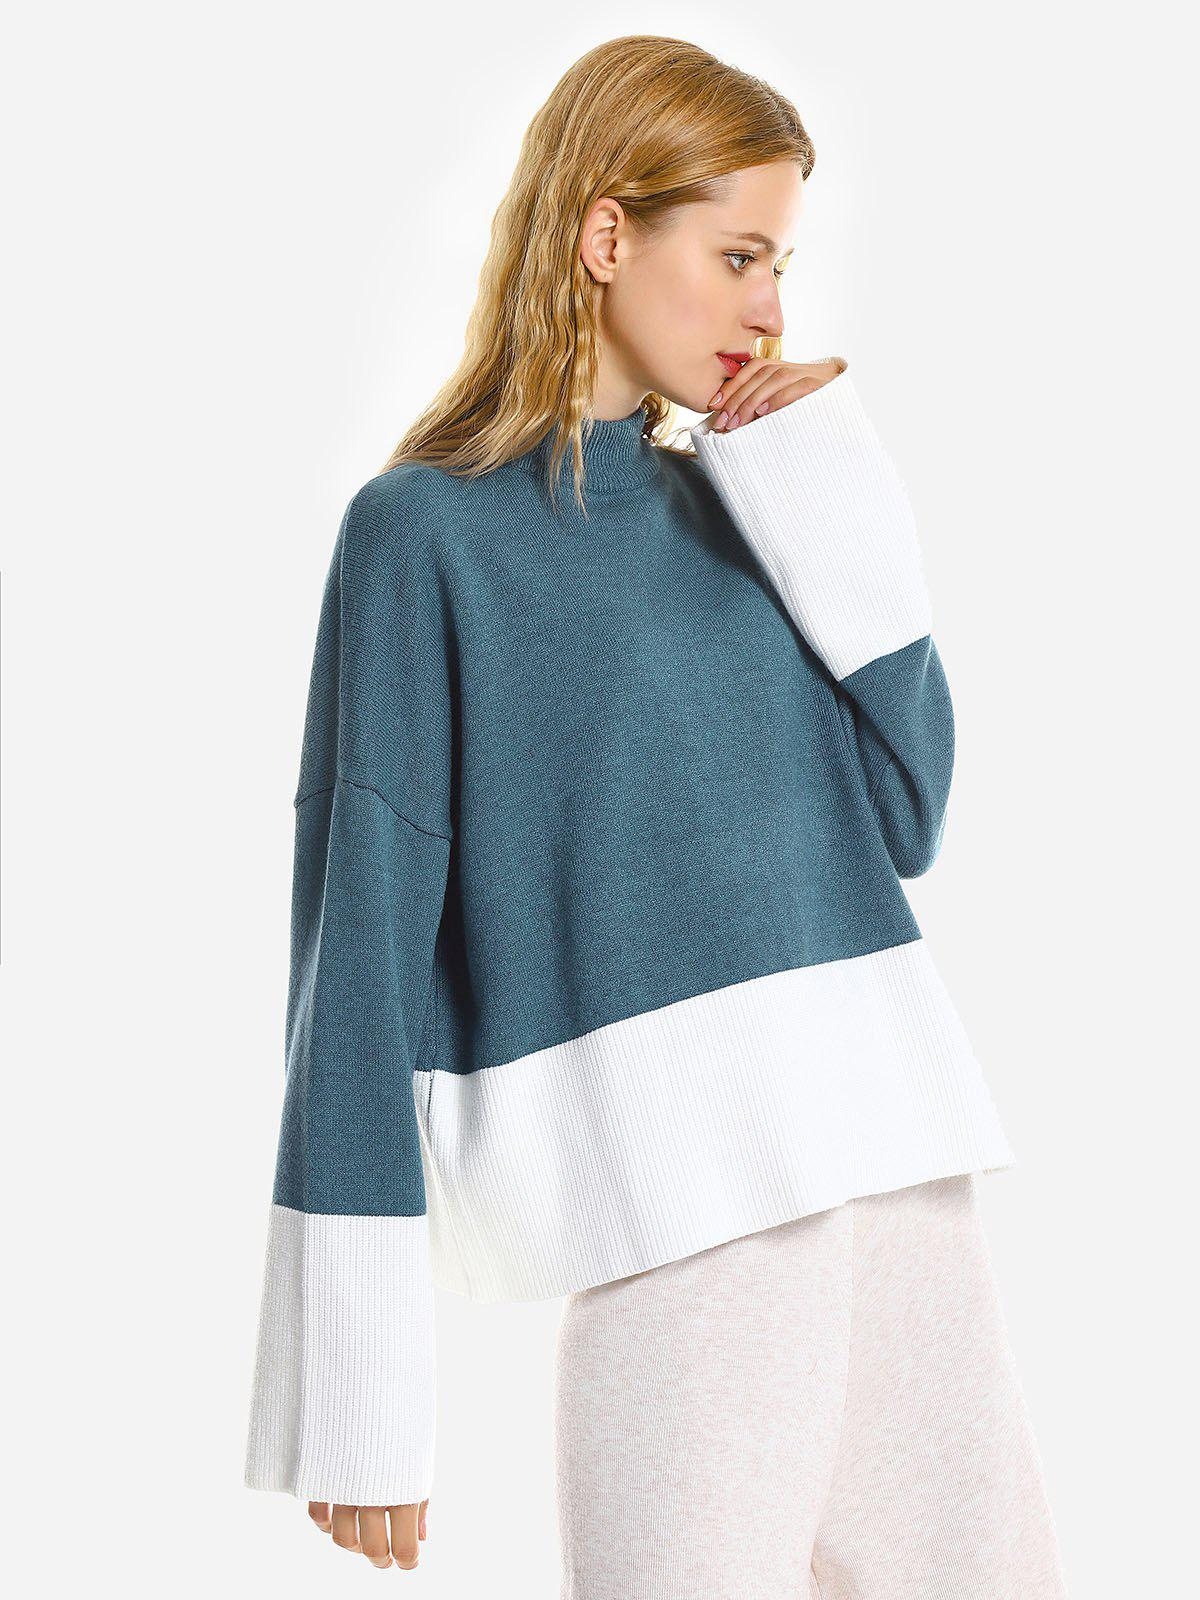 Hot ZAN.STYLE Loose Pullover Sweater